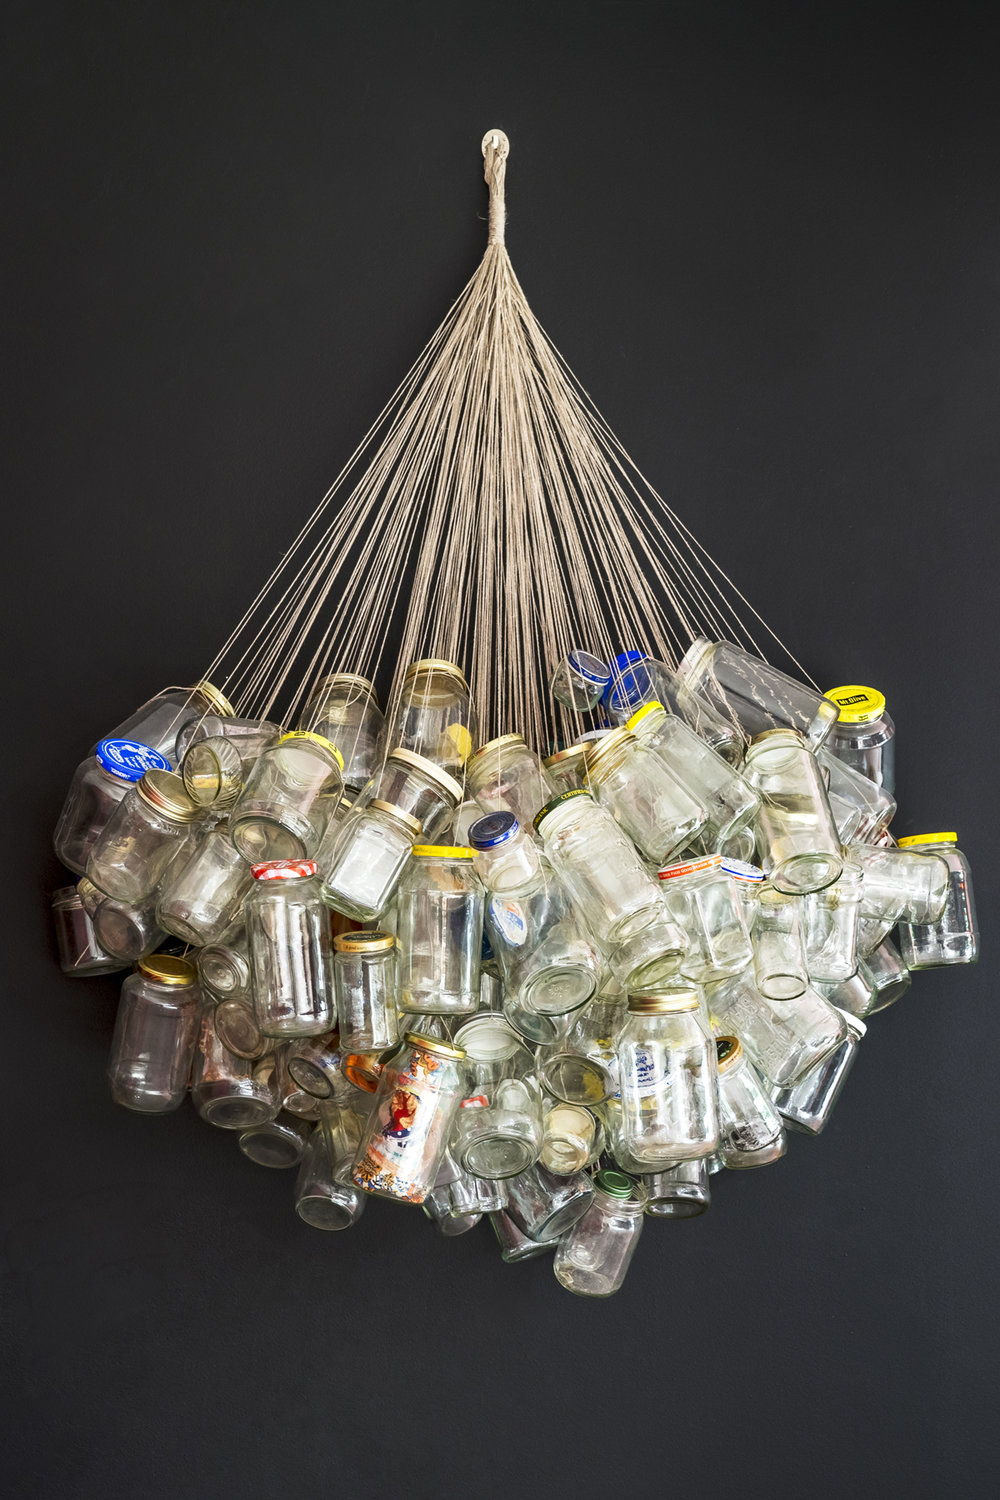 SOLD! - Found, kept, keeping. Collected jars, string, gravity. 30